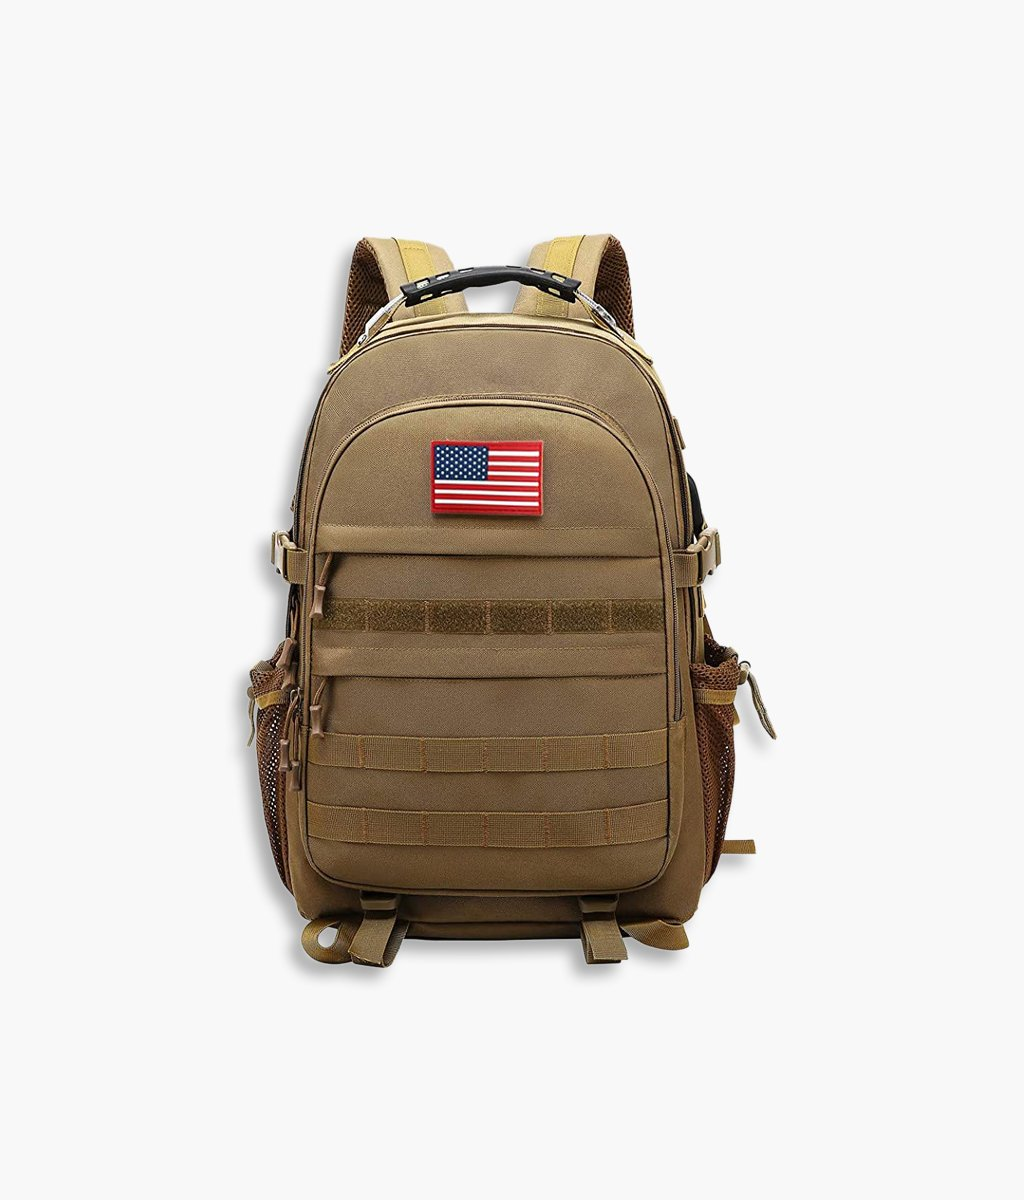 Military Tactical Backpack 40L Army Pack Featured Image